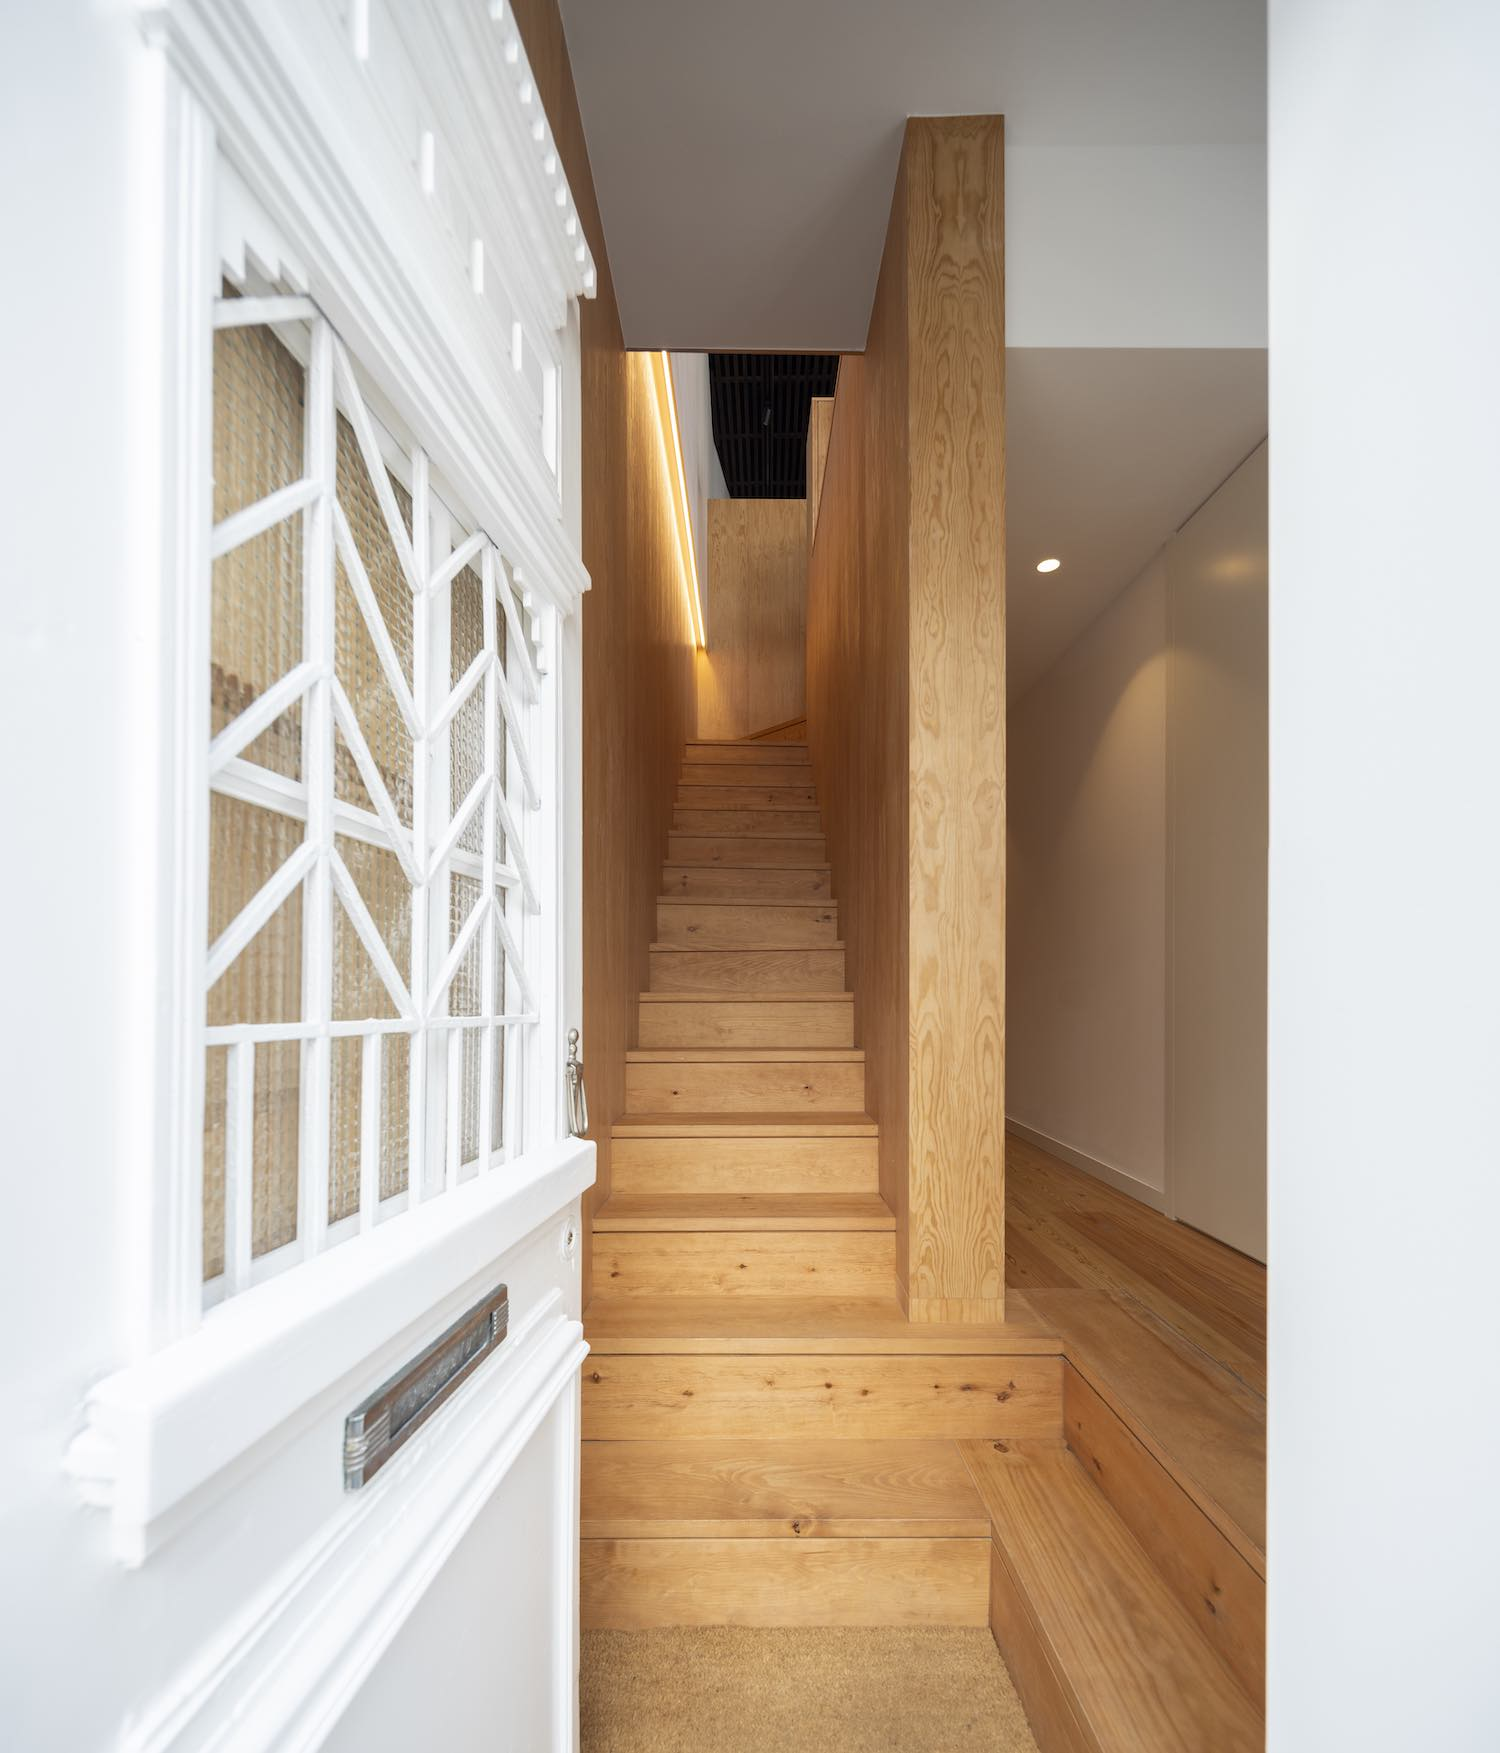 staircase located at the entry fo the house